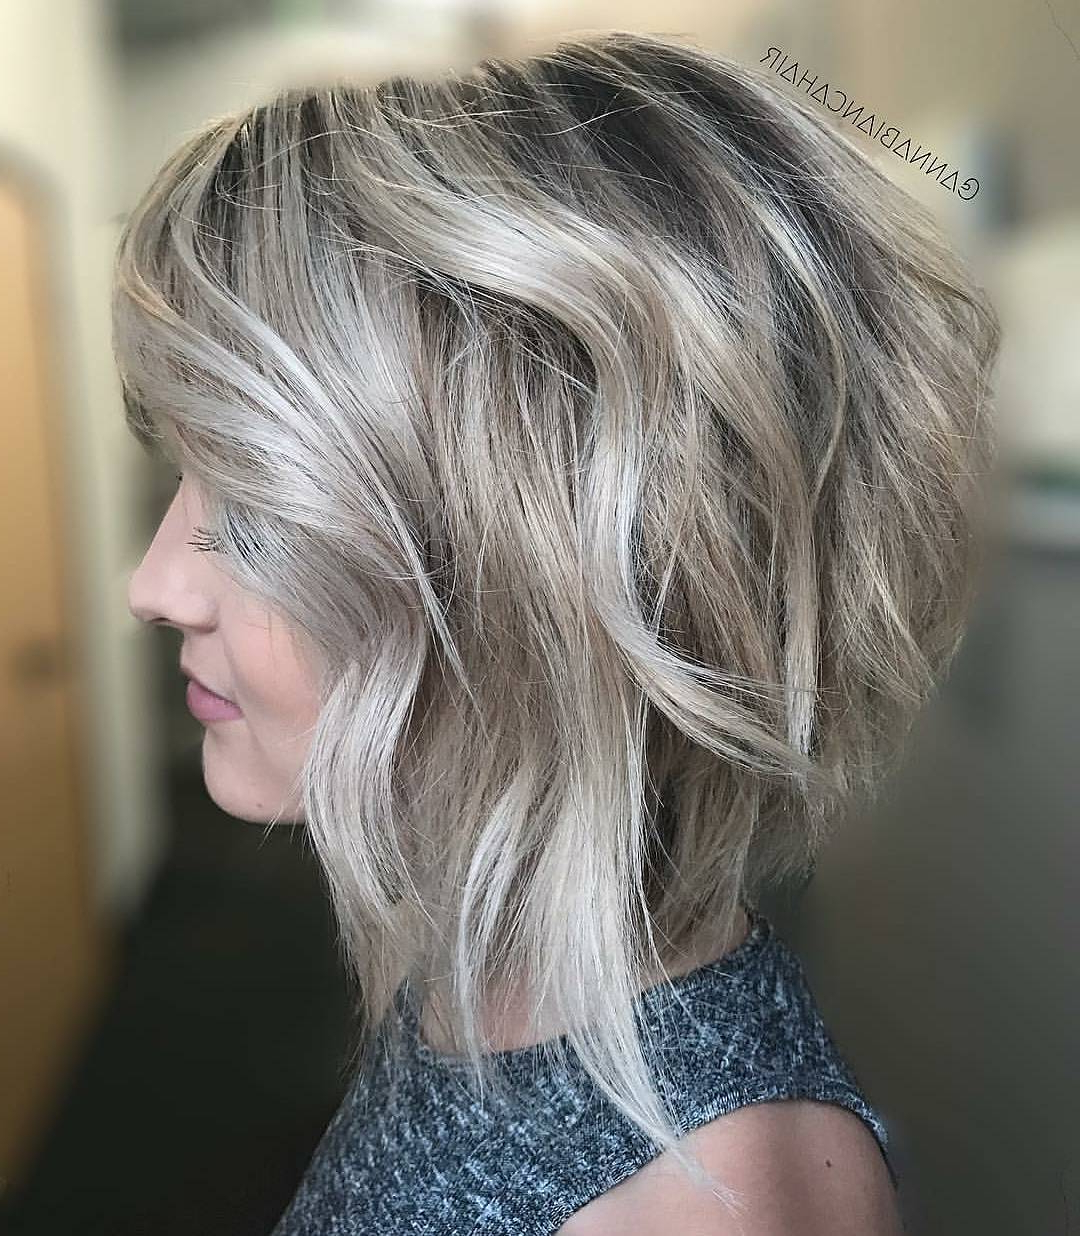 Well Liked Chic Medium Haircuts With Regard To Chic Medium Bob Haircut For Women, Shoulder Length Bob Hairstyle (View 20 of 20)